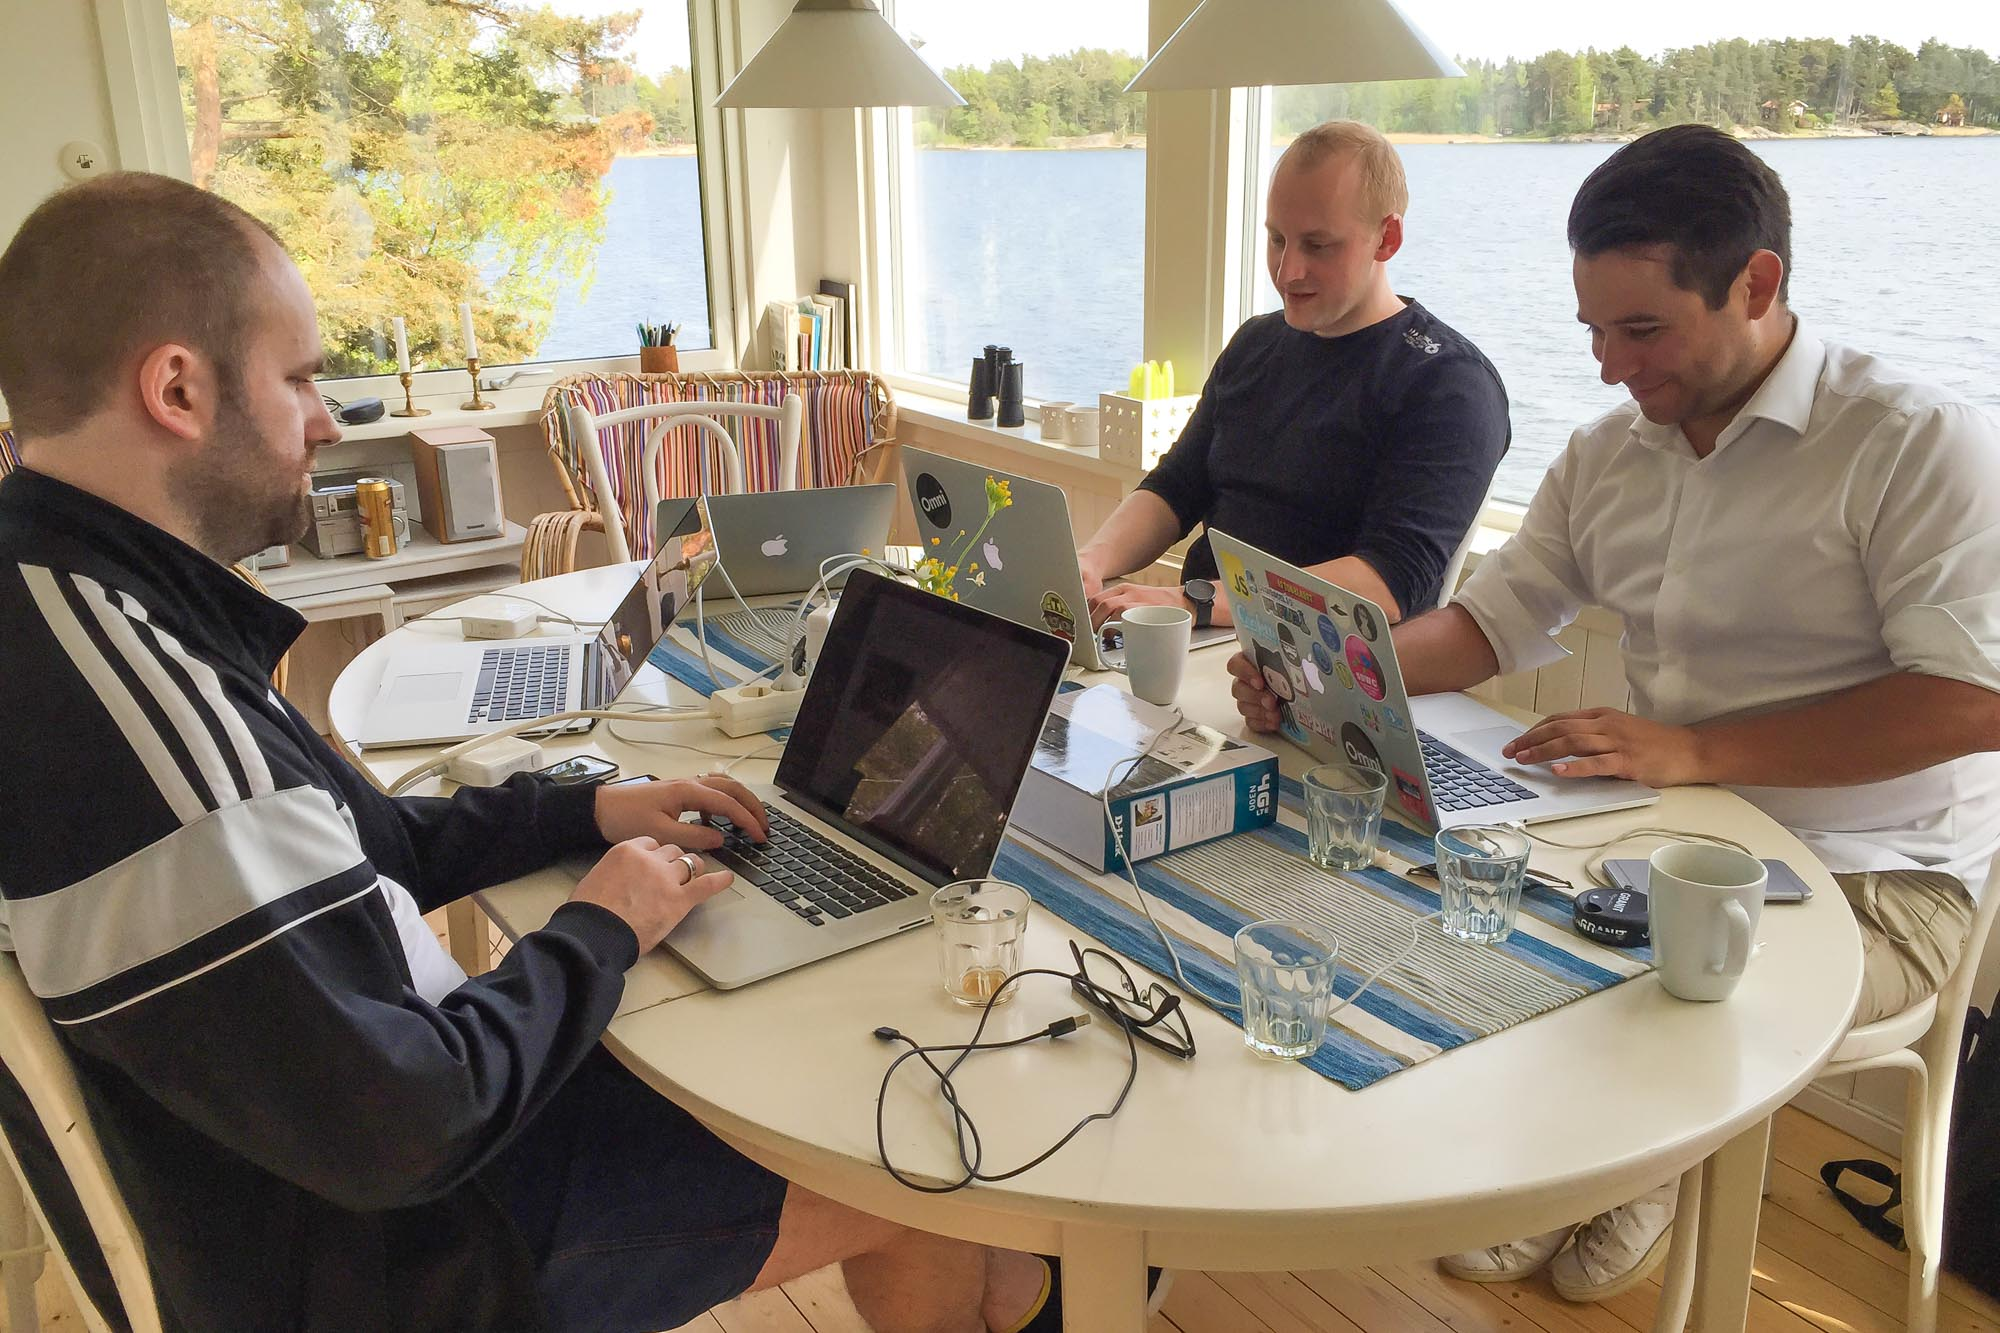 Coding by the sea in Sweden! From left Android developer Damian Petla, iOS developer Michal and tech lead Alexander Nordström